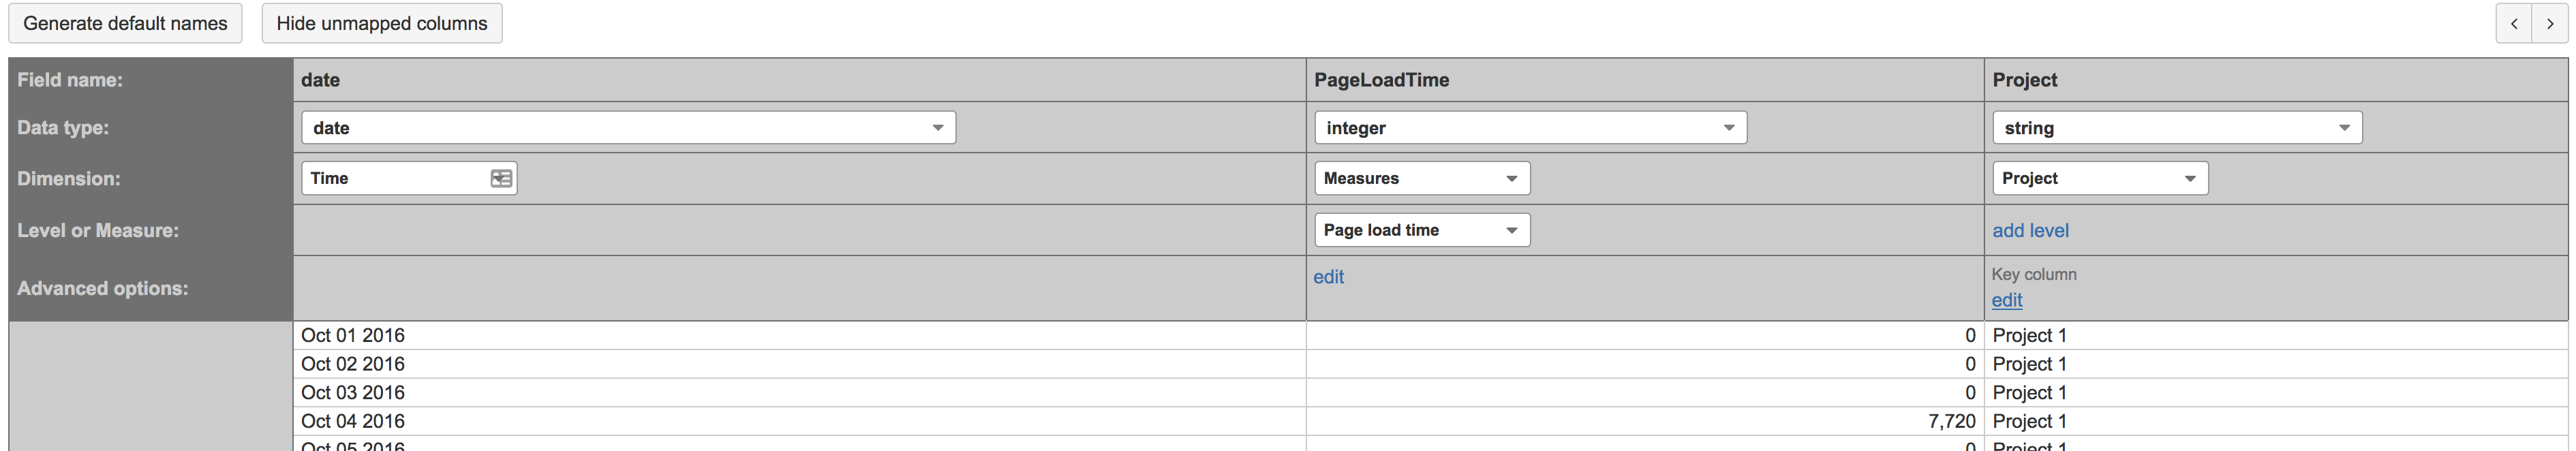 Google Analytics from REST API - Flex.bi Support Center 4.0